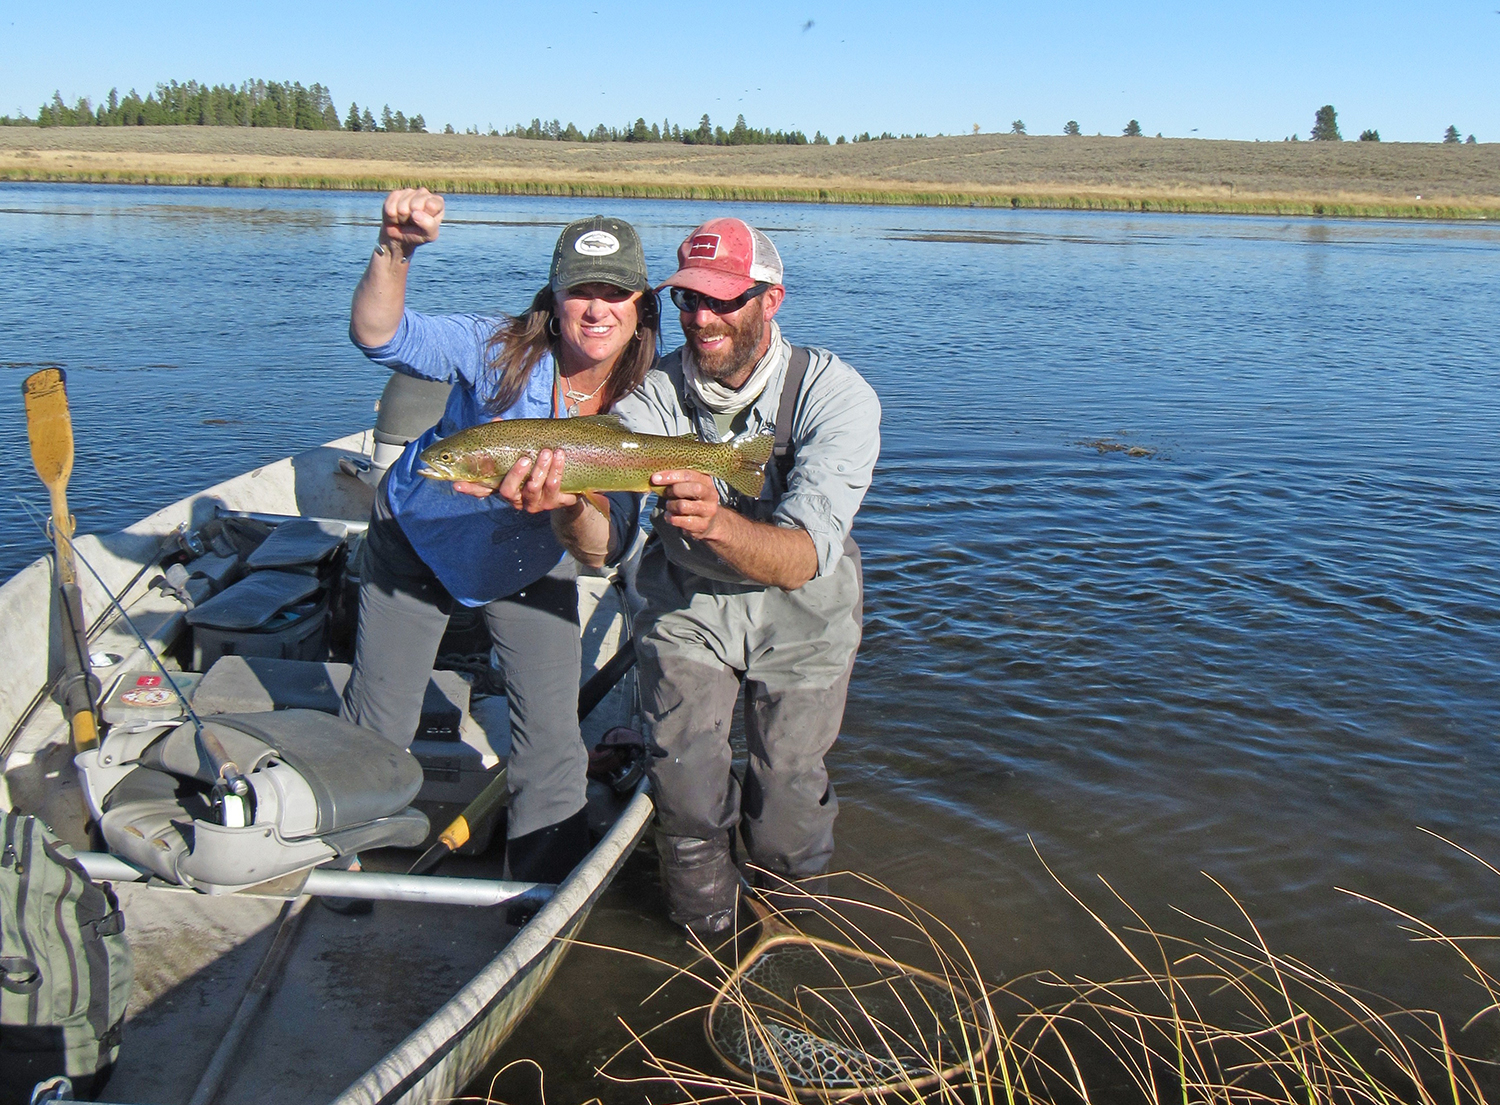 Charity is ecstatic after catching this incredible fish on a dry fly in just inches of water on the Ranch